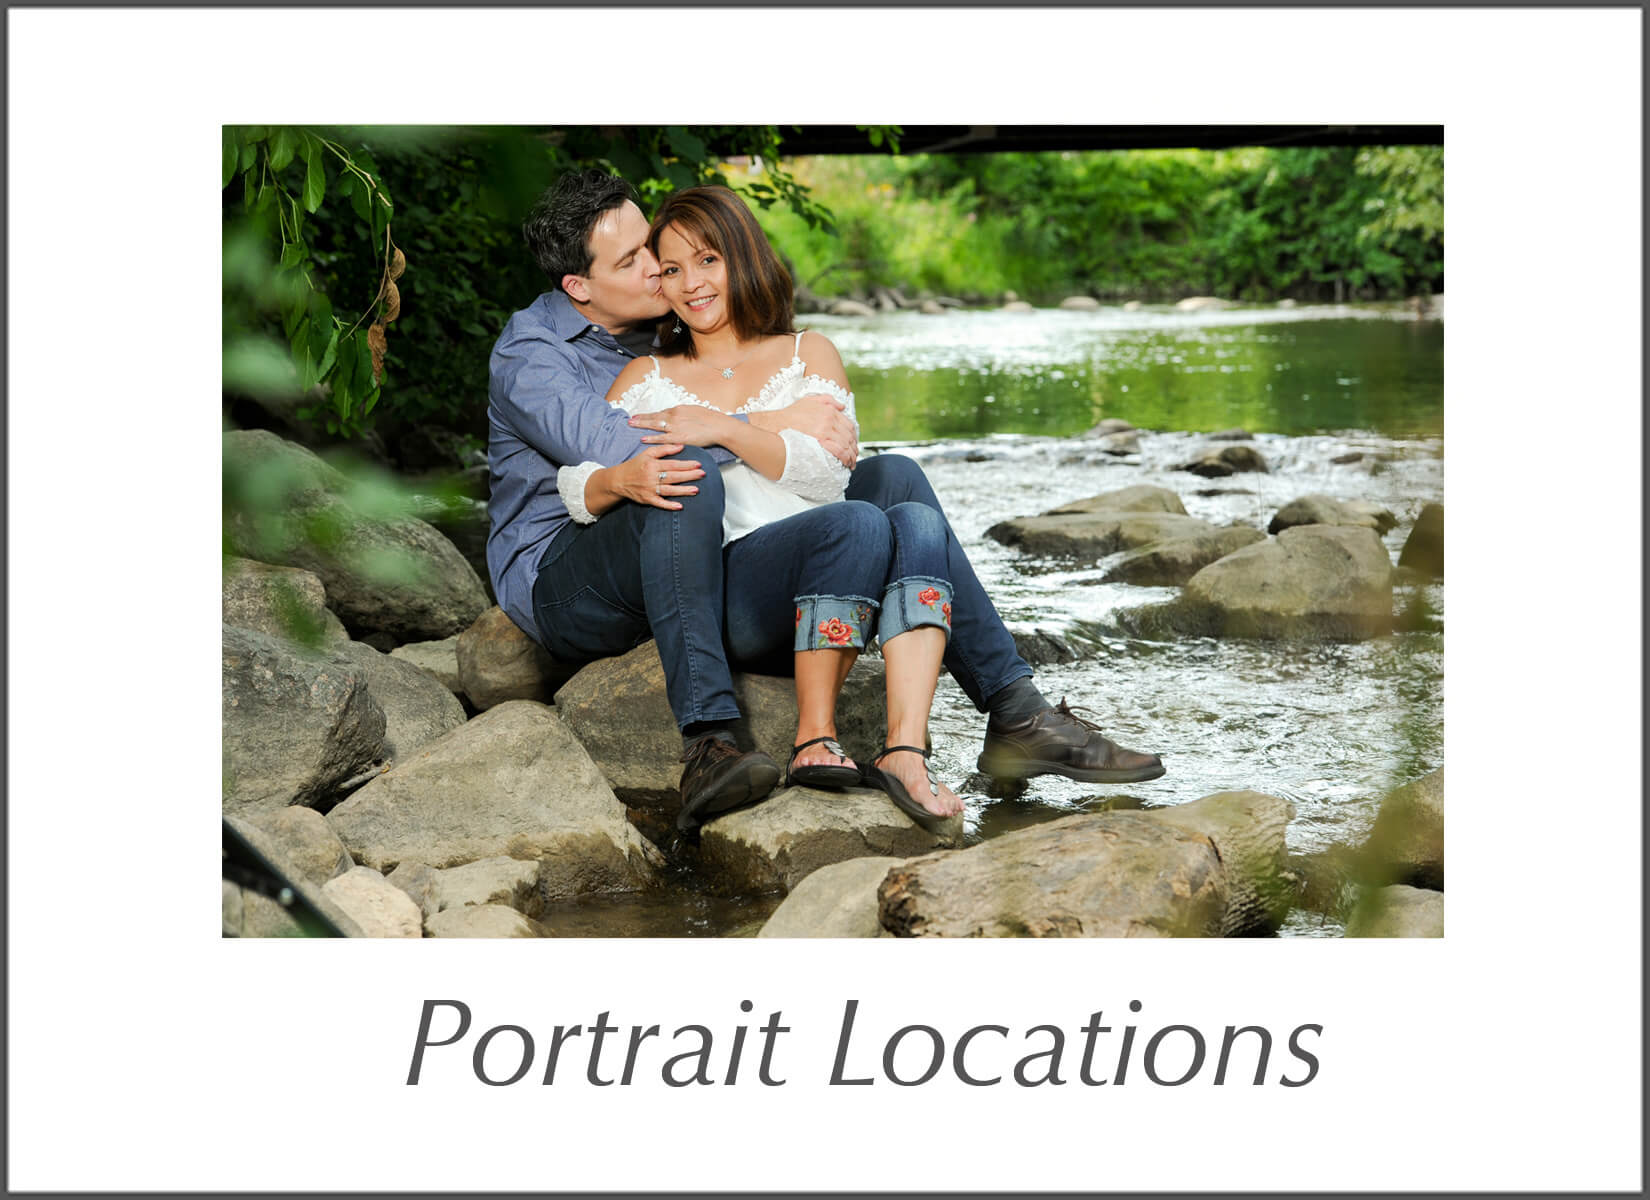 A menu to all the locations Marci Curtis Wedding Photojournalist uses for her on location portrait photography sessions